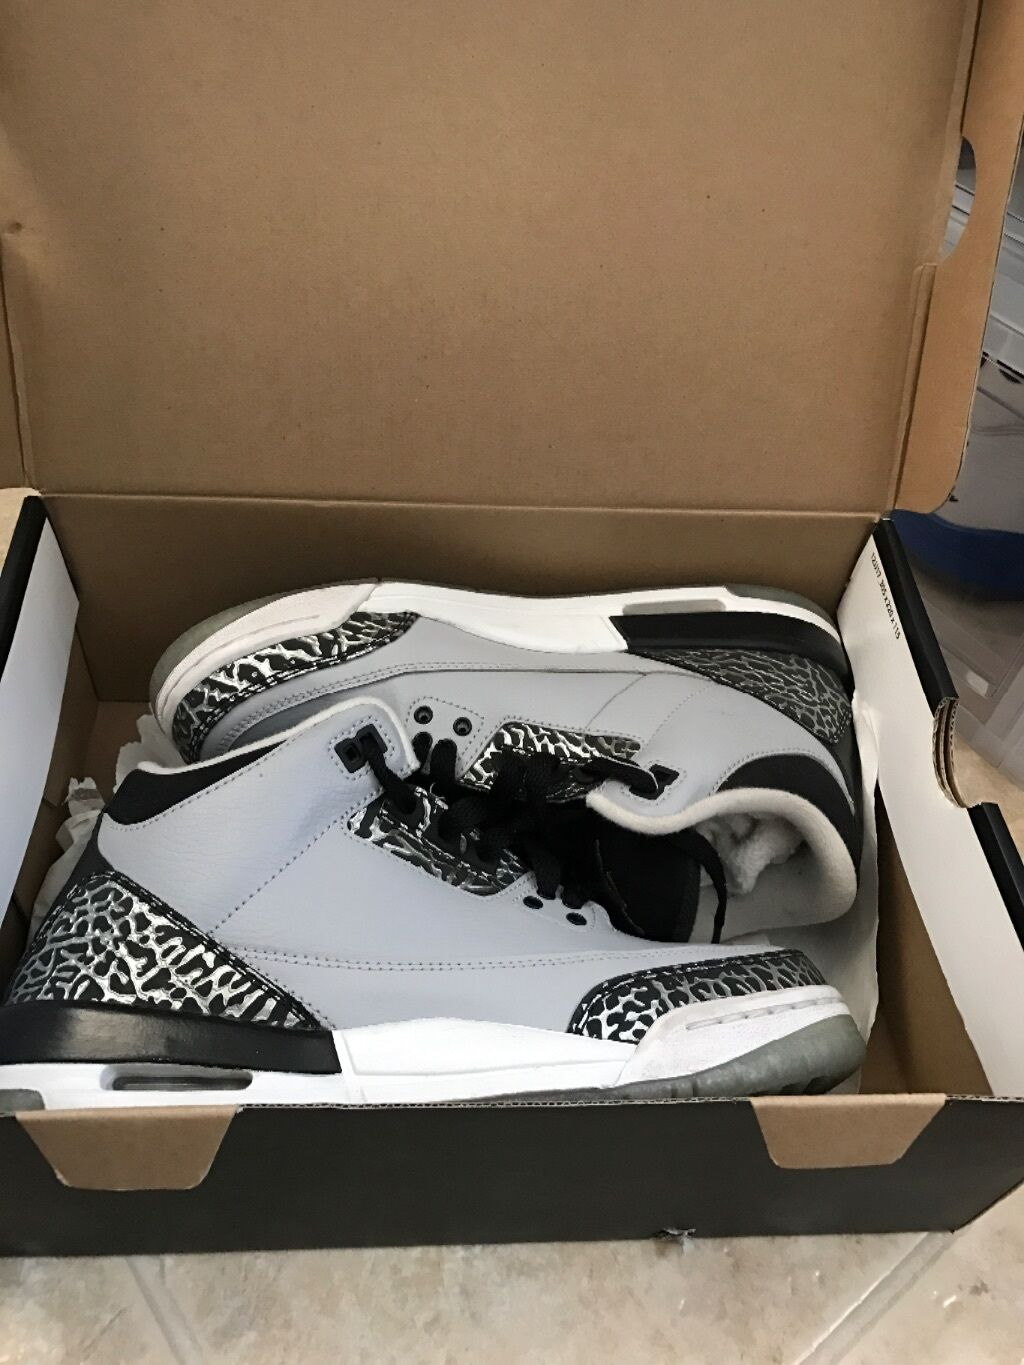 2018 Nike Air Jordan 3 III Retro Wolf Grey Comfortable The latest discount shoes for men and women